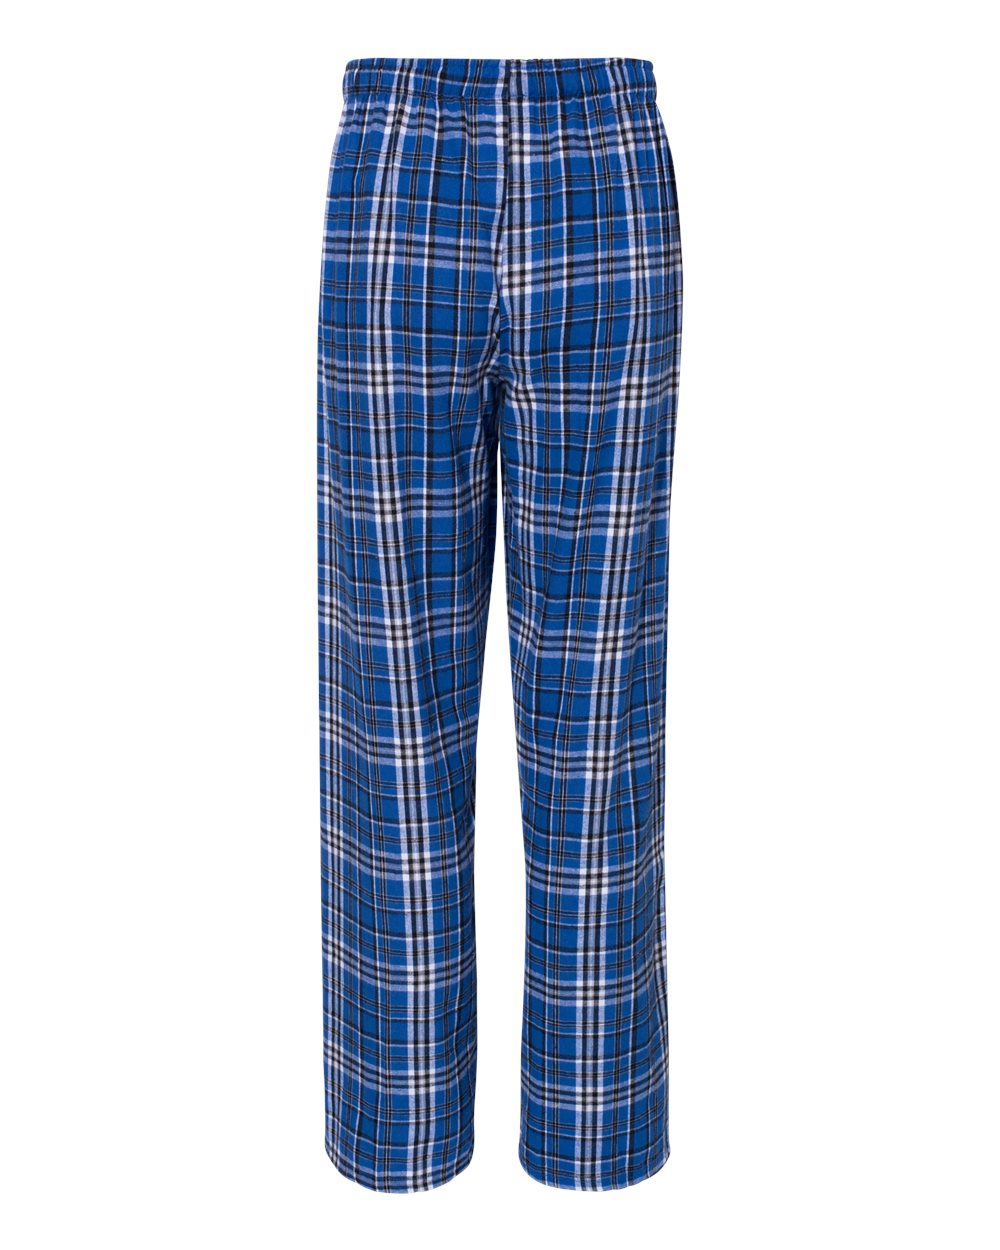 Boxercraft-Unisex-Flannel-Pants-With-Pockets-Pajama-Pants-F20-up-to-2XL thumbnail 46